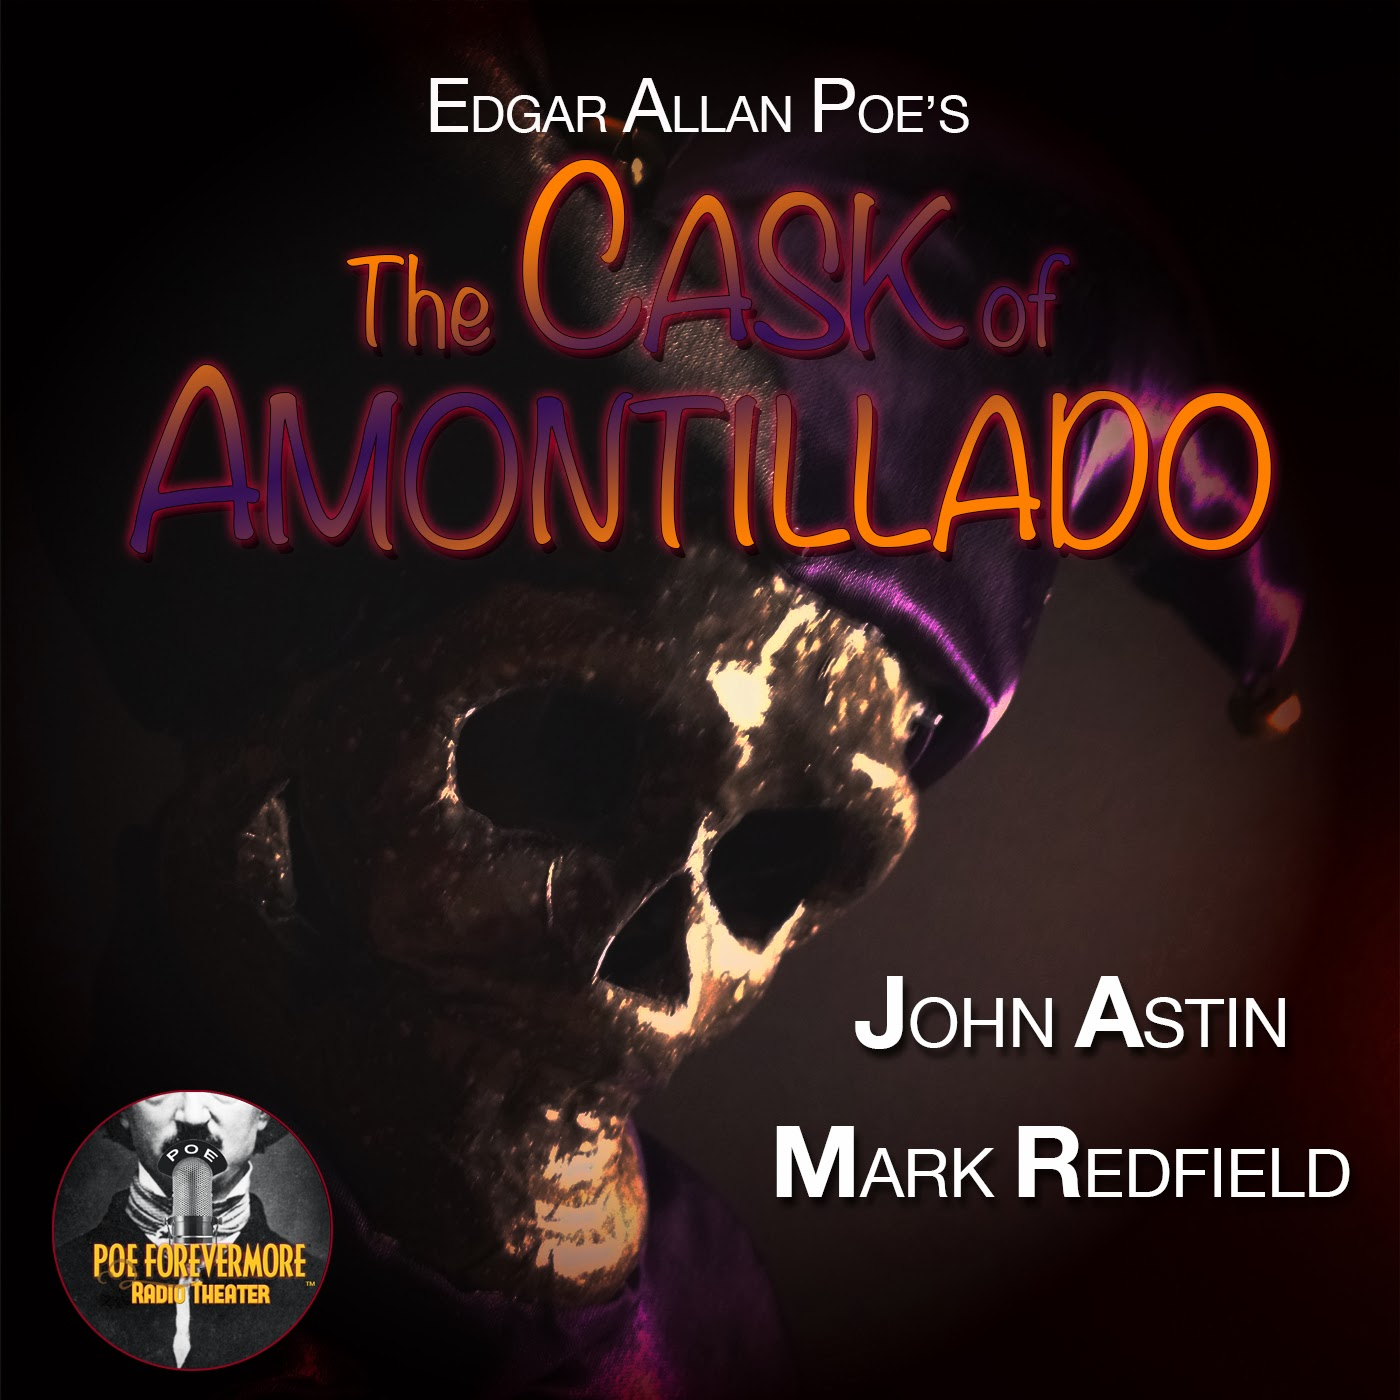 APRIL'S AUDIO PLAY: THE CASK OF AMONTILLADO